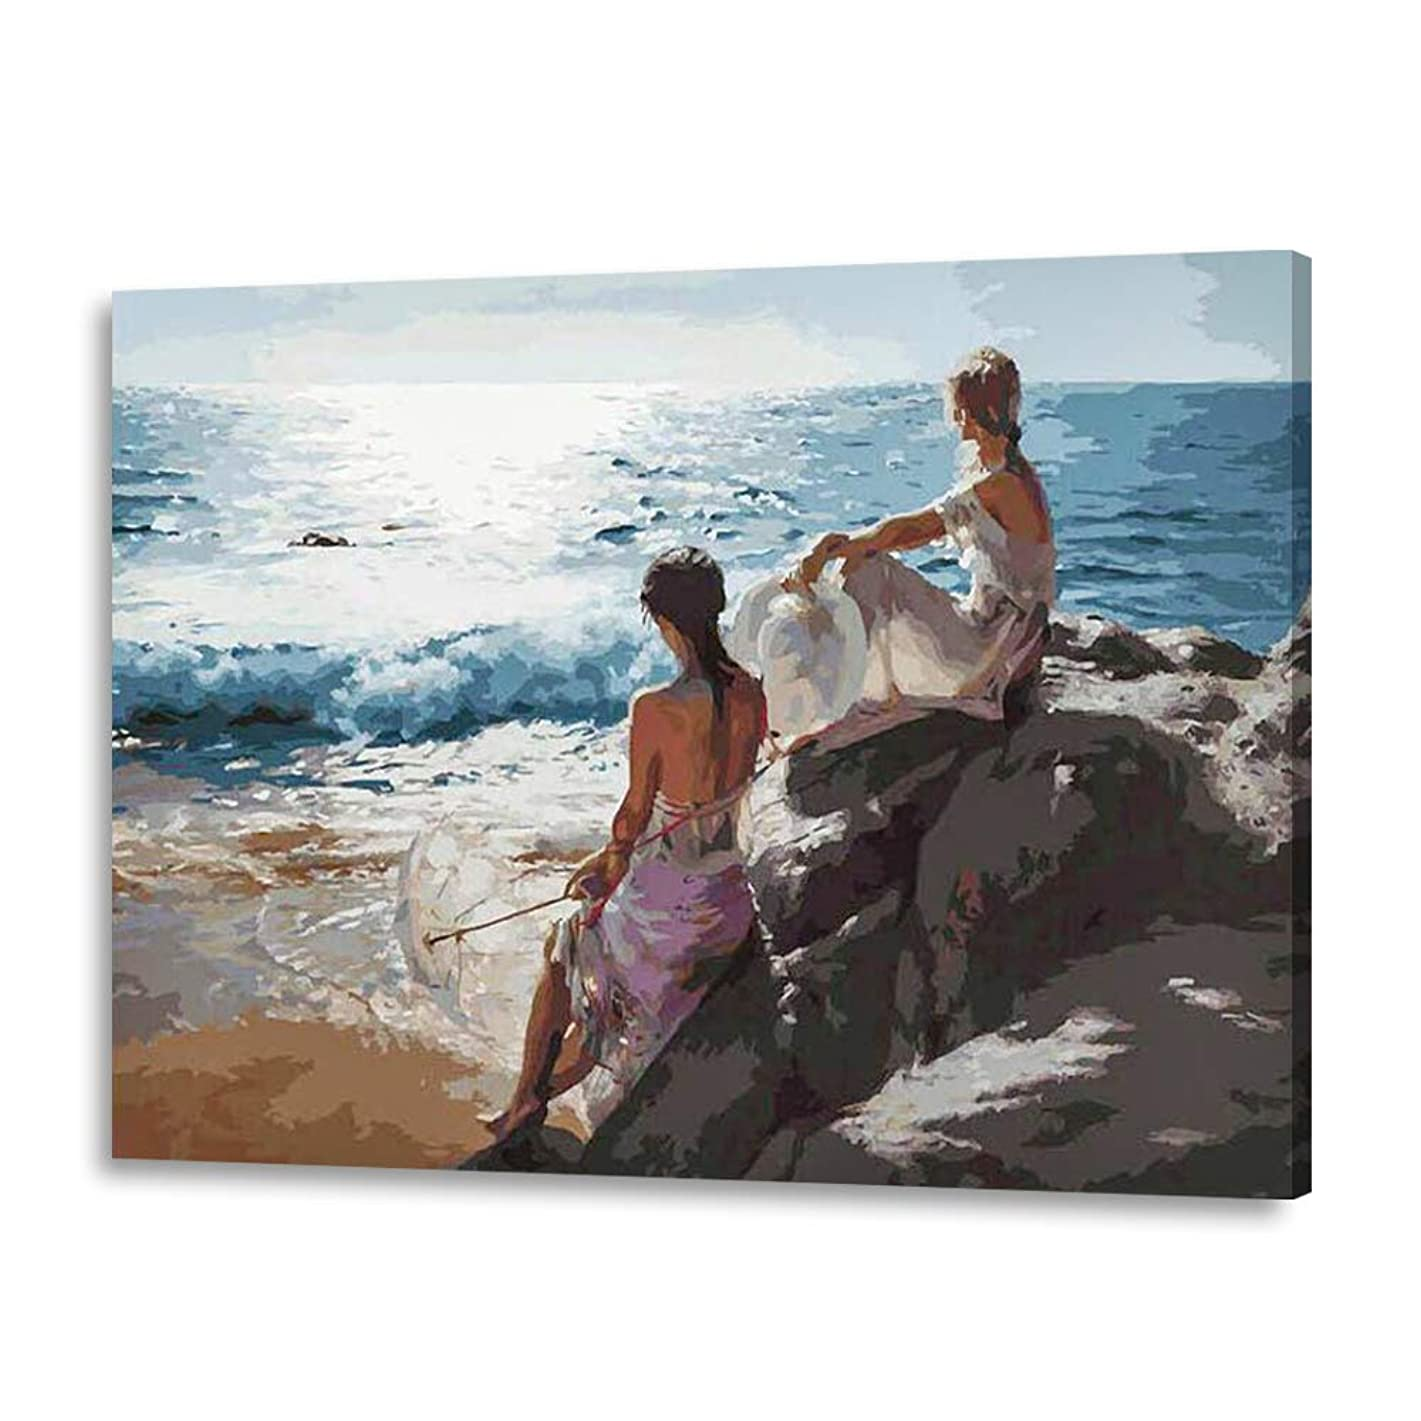 LIUDAO Paint by Number Kit - DIY Oil Painting on Canvas - Beautiful Girls Beach 16x20 Inches (Wooden Frame)